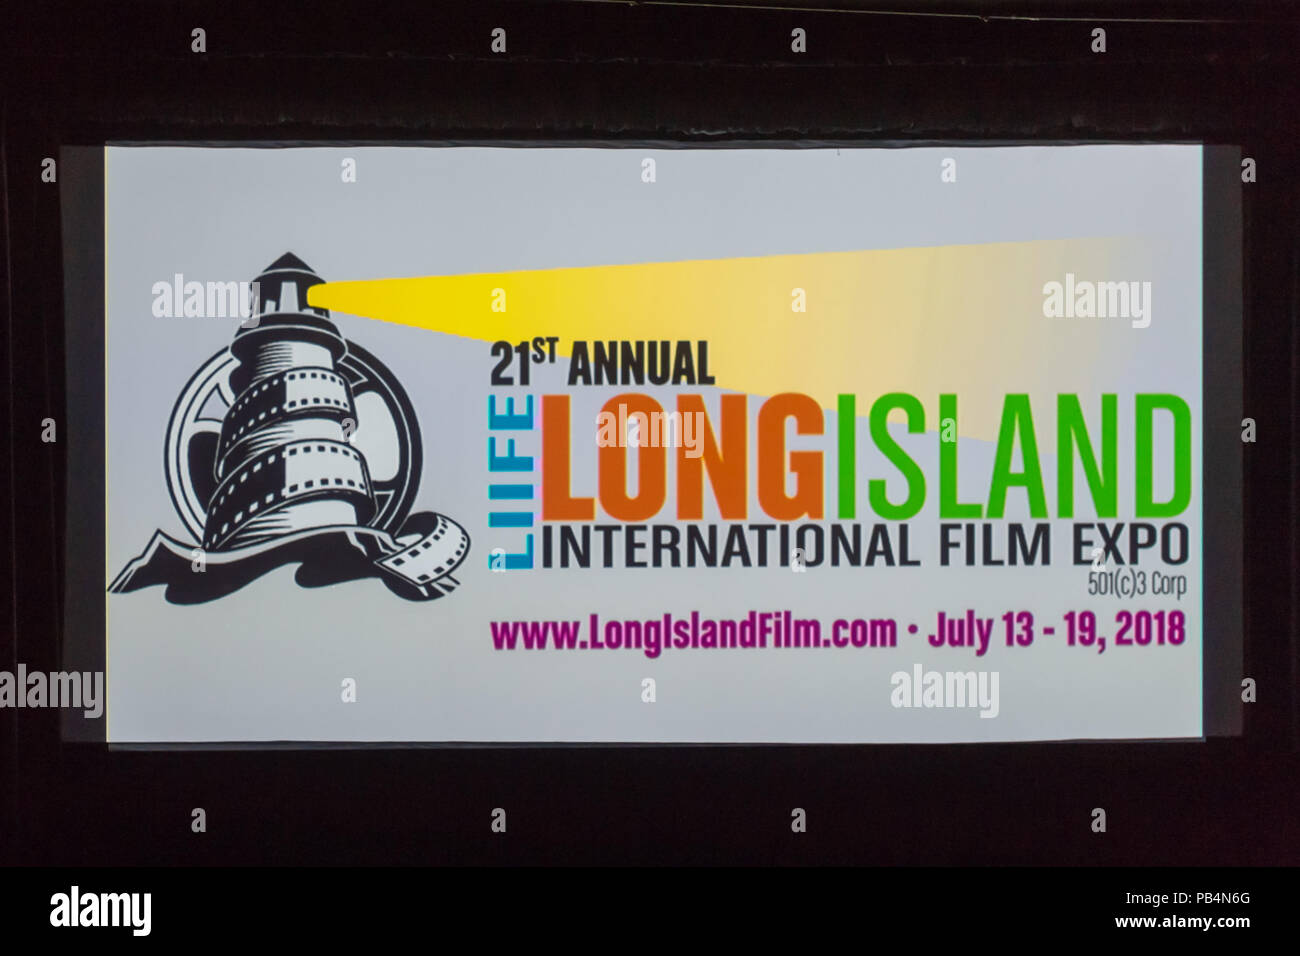 Bellmore, New York, USA. July 18, 2018. At start of final block of film screenings for the 21st Annual LIIFE Long Island International Film Expo, the LIIFE lighthouse and film reel logo and information fill the screen at the Bellmore Movies, the LIIFE location. LIIFE is a nonprofit 501(c)3 Corporation. Stock Photo